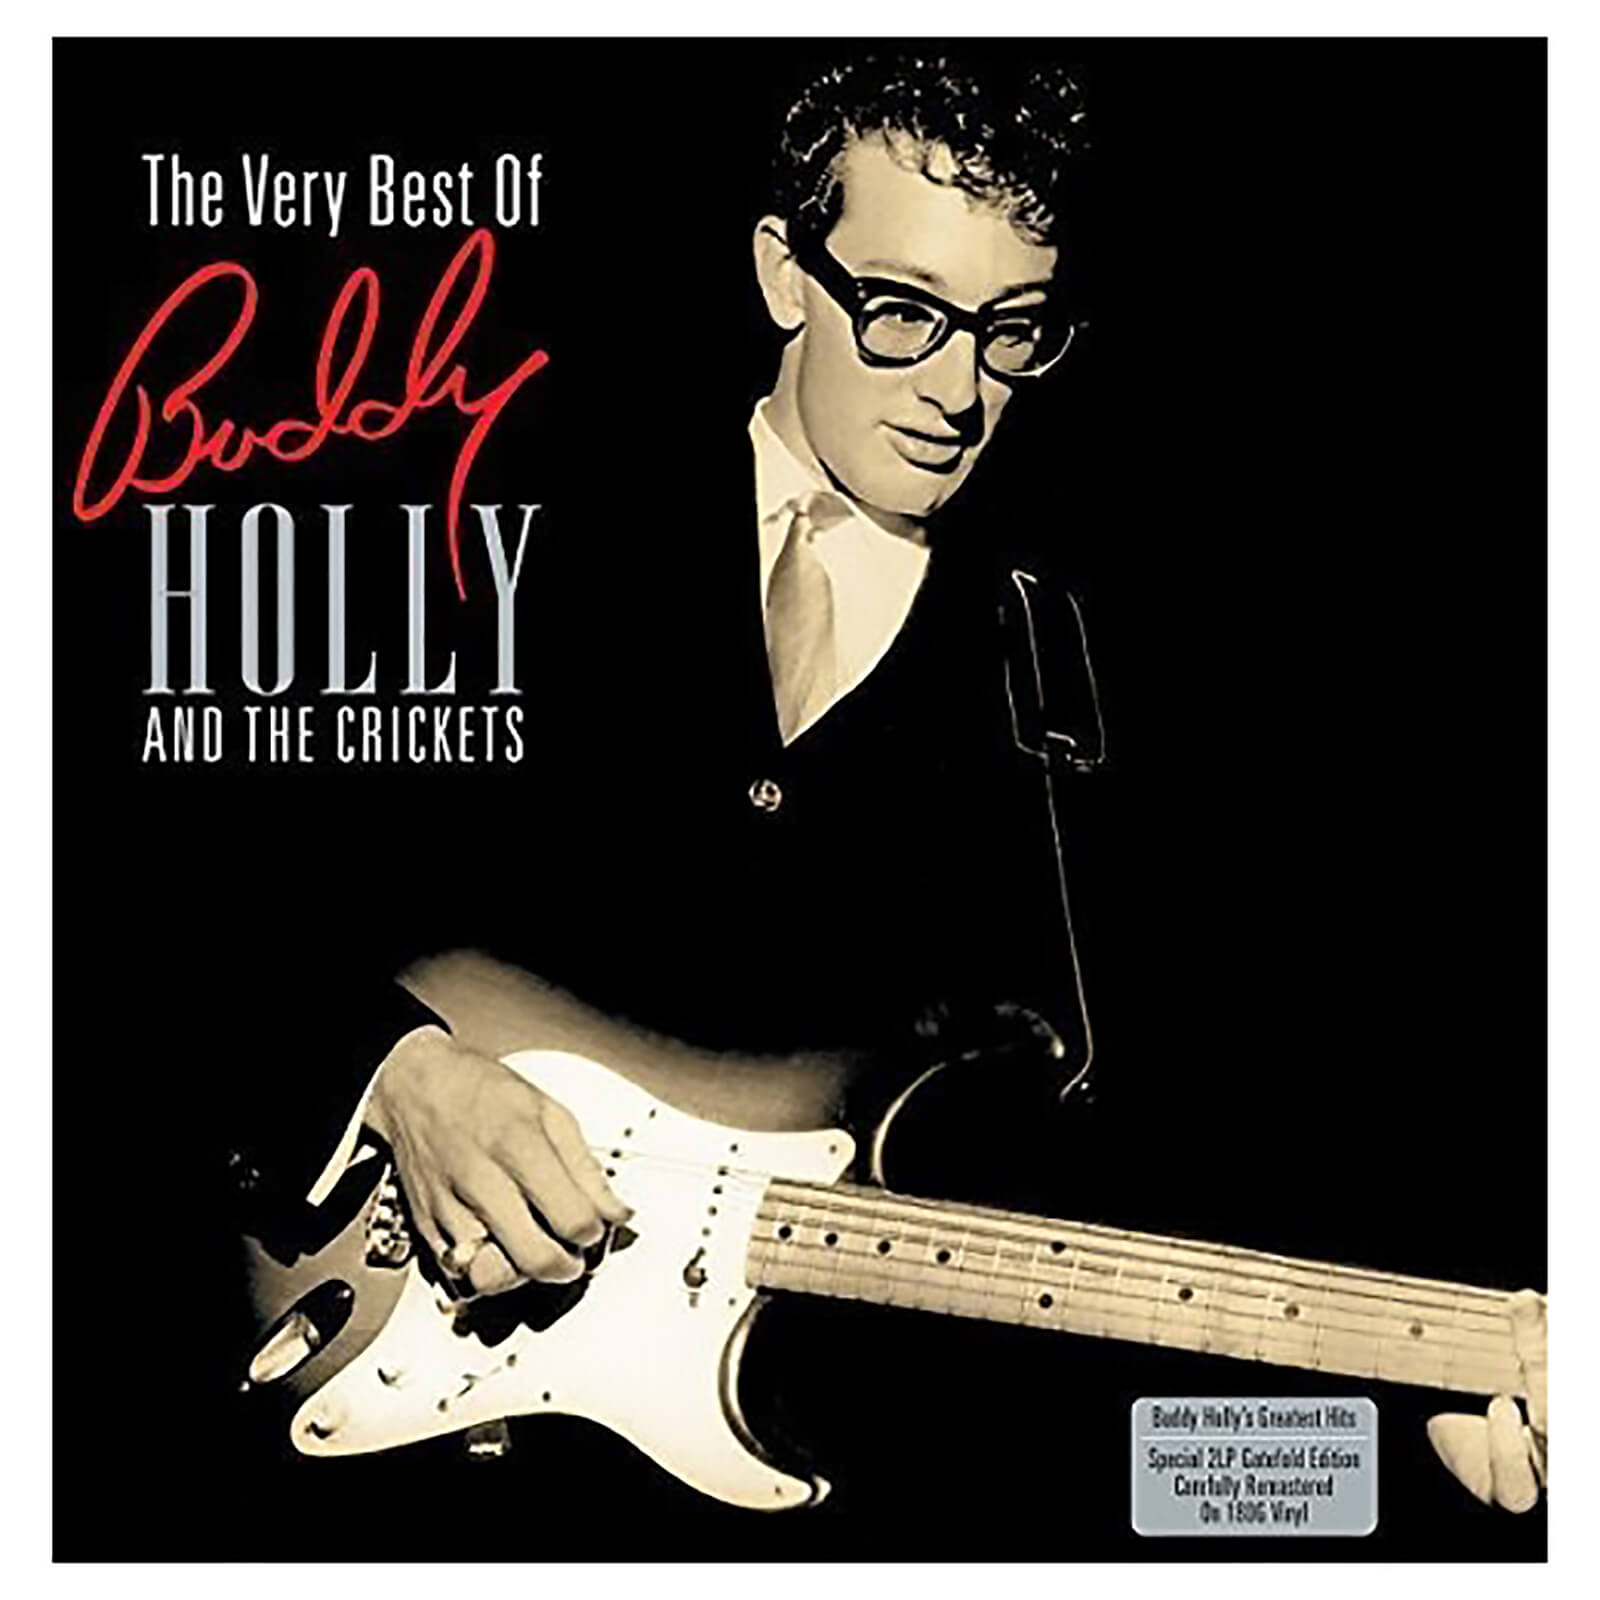 Buddy Holly & Crickets - Very Best Of - Vinyl